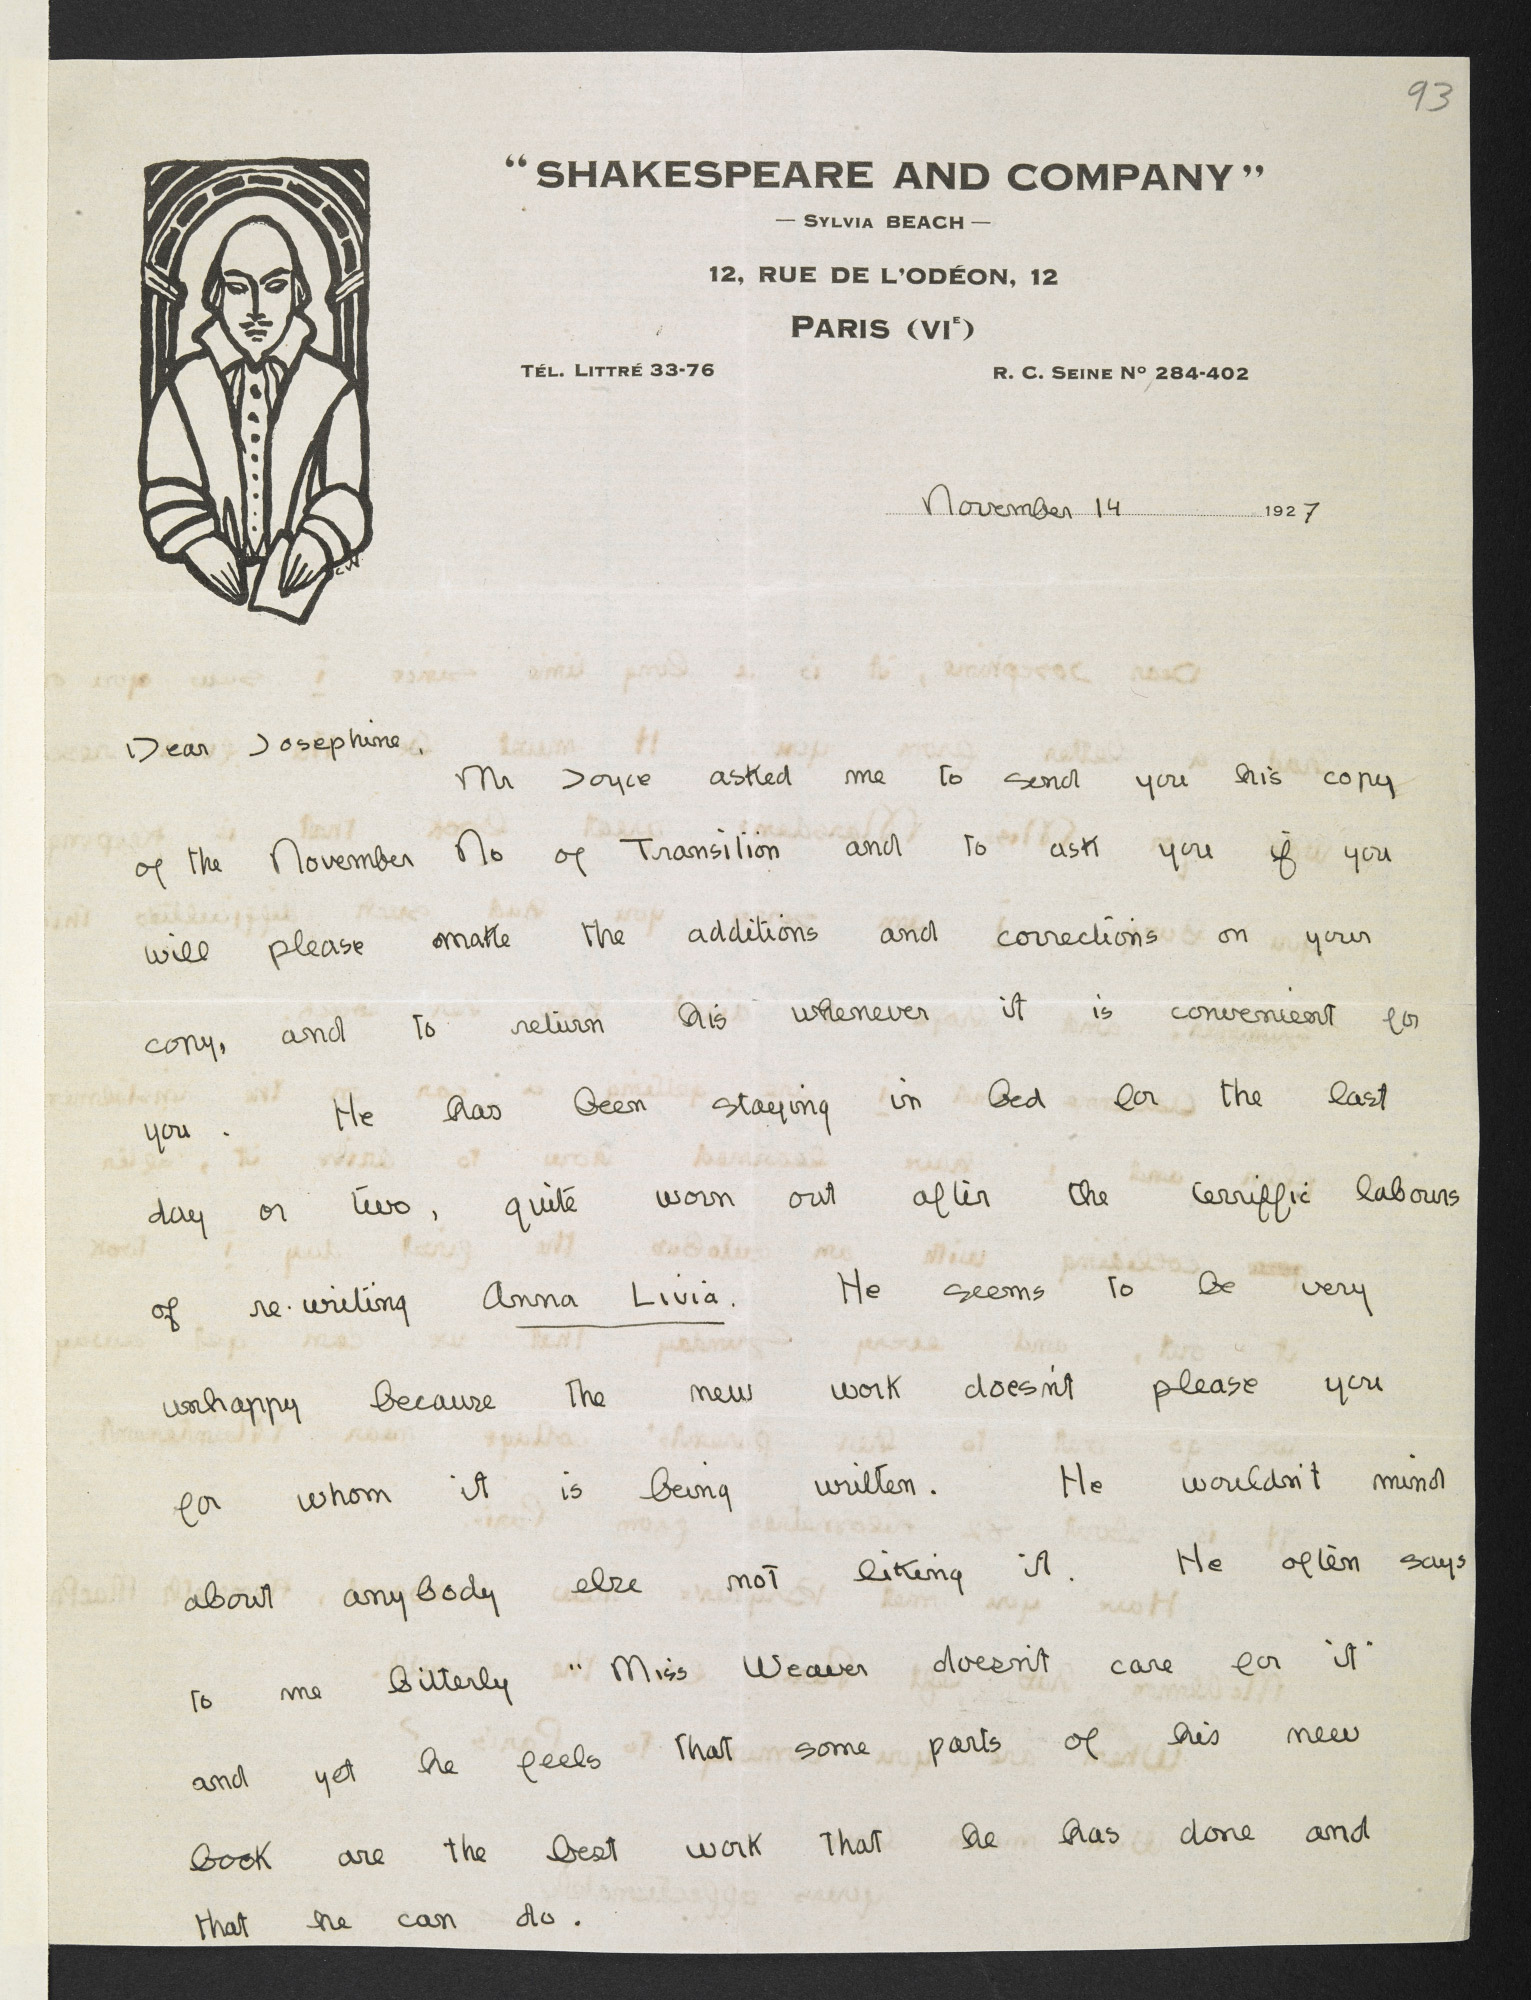 Letter from Sylvia Beach to Harriet Shaw Weaver about James Joyce and Finnegans Wake